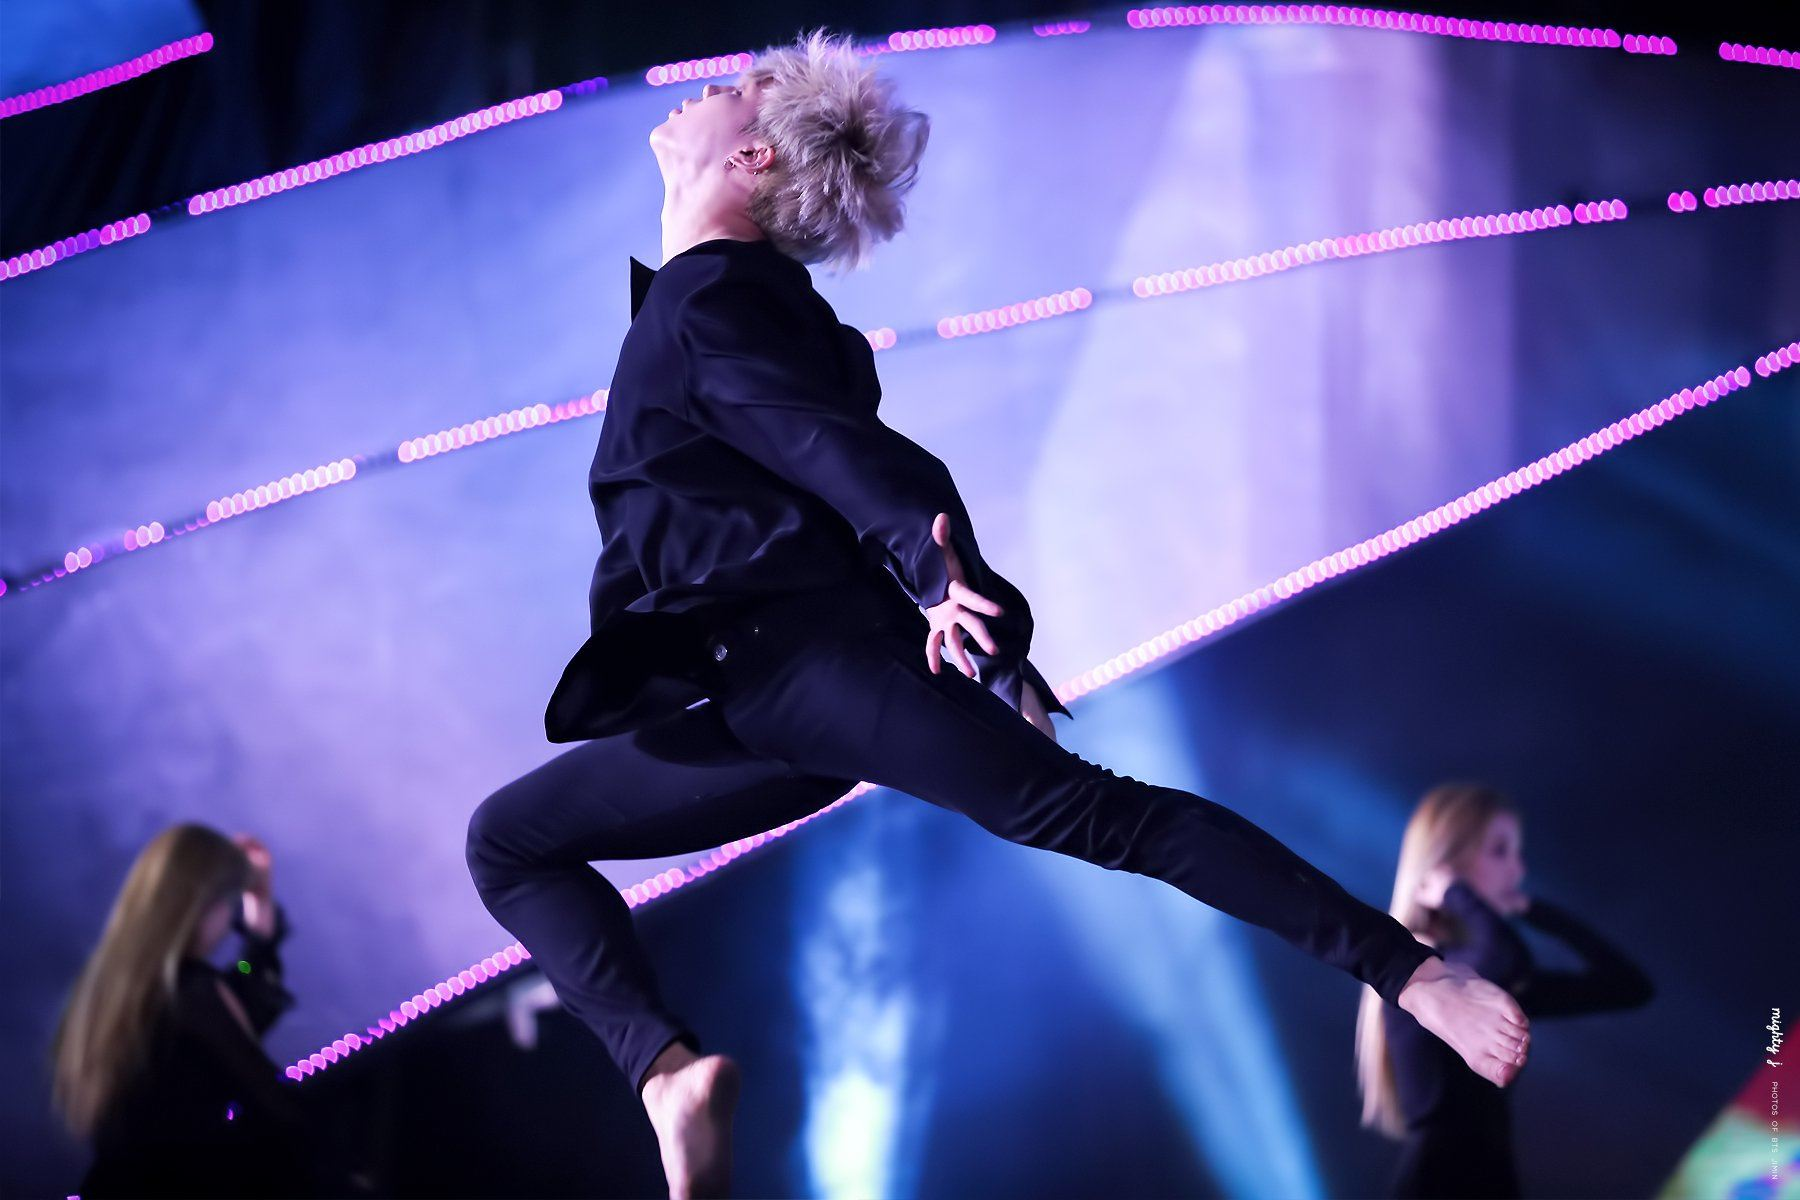 These 7 Photos Prove How Amazing Jimin Is At Dancing - Koreaboo